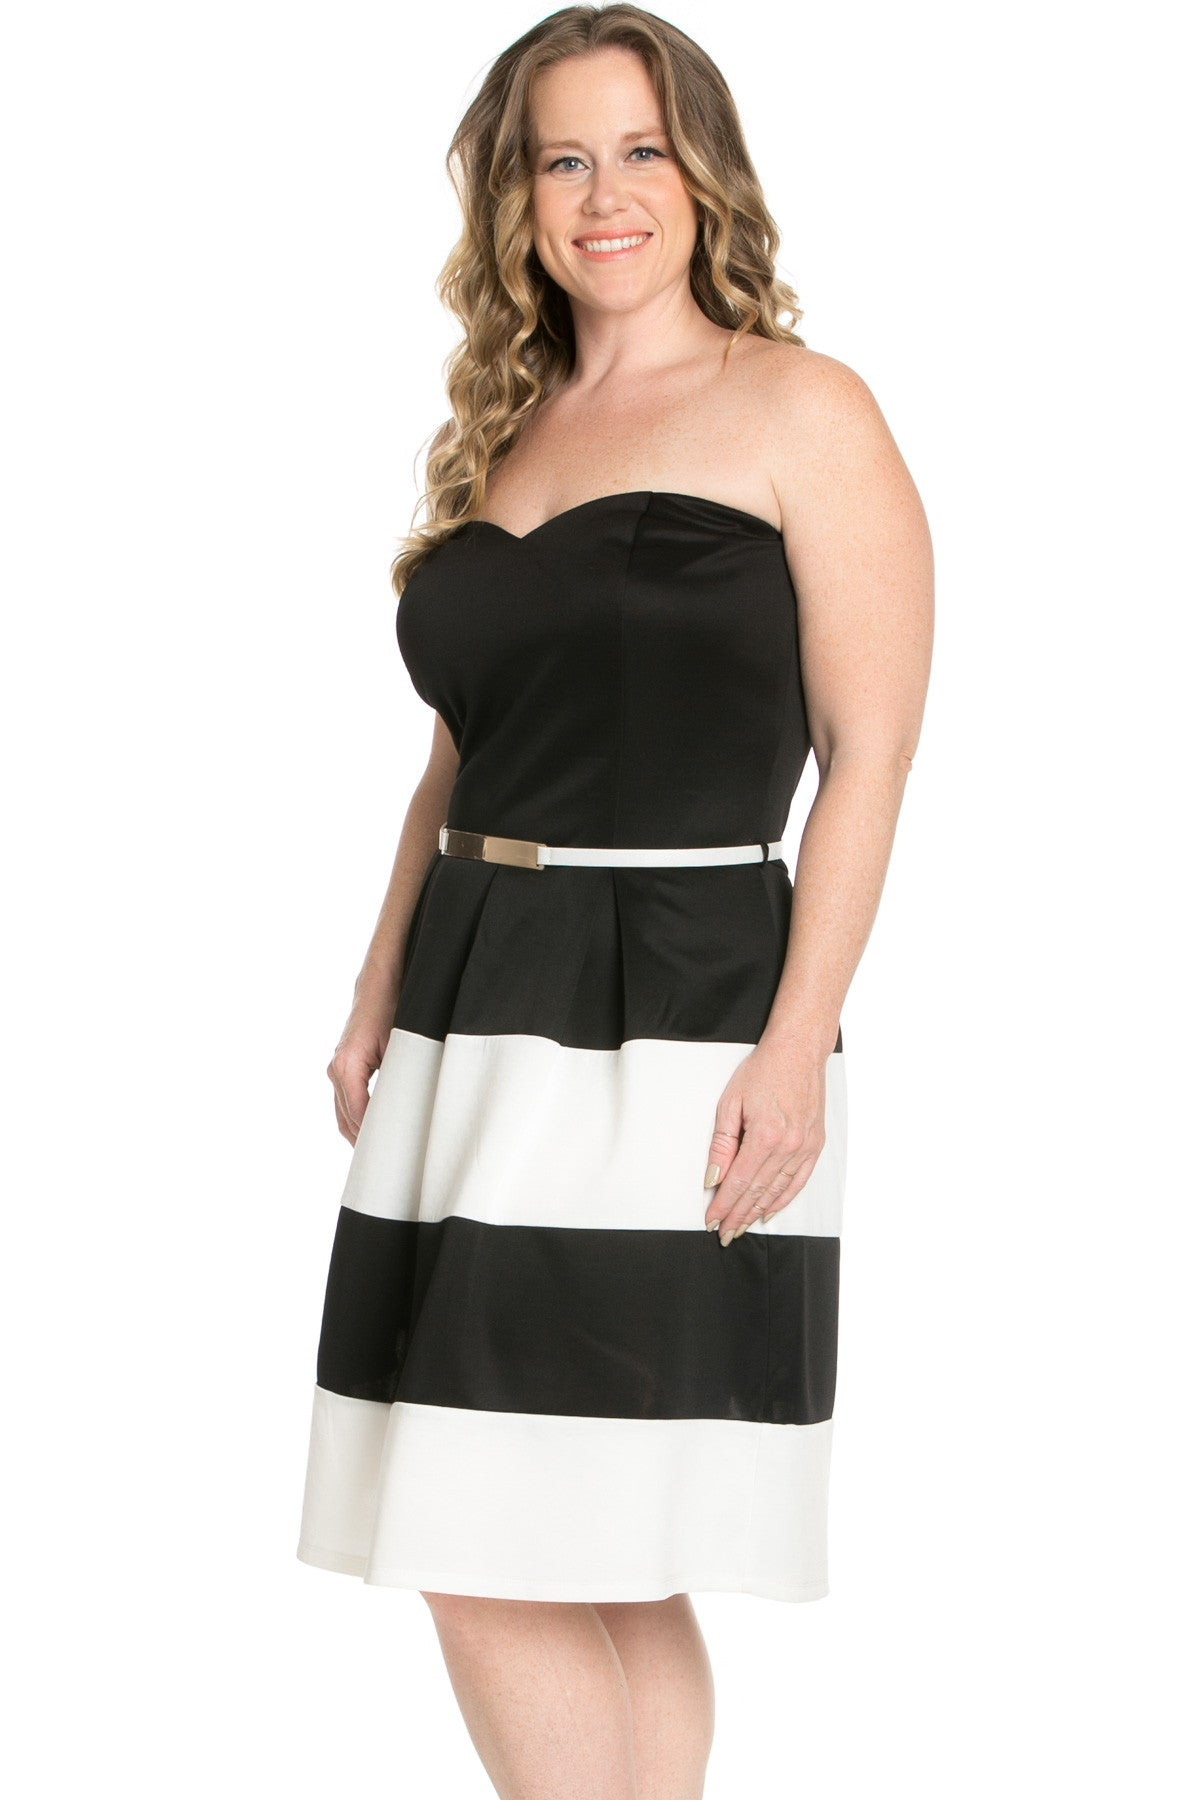 Sweetheart Color Block in Black Tube Dress with Belt - Dresses - My Yuccie - 4